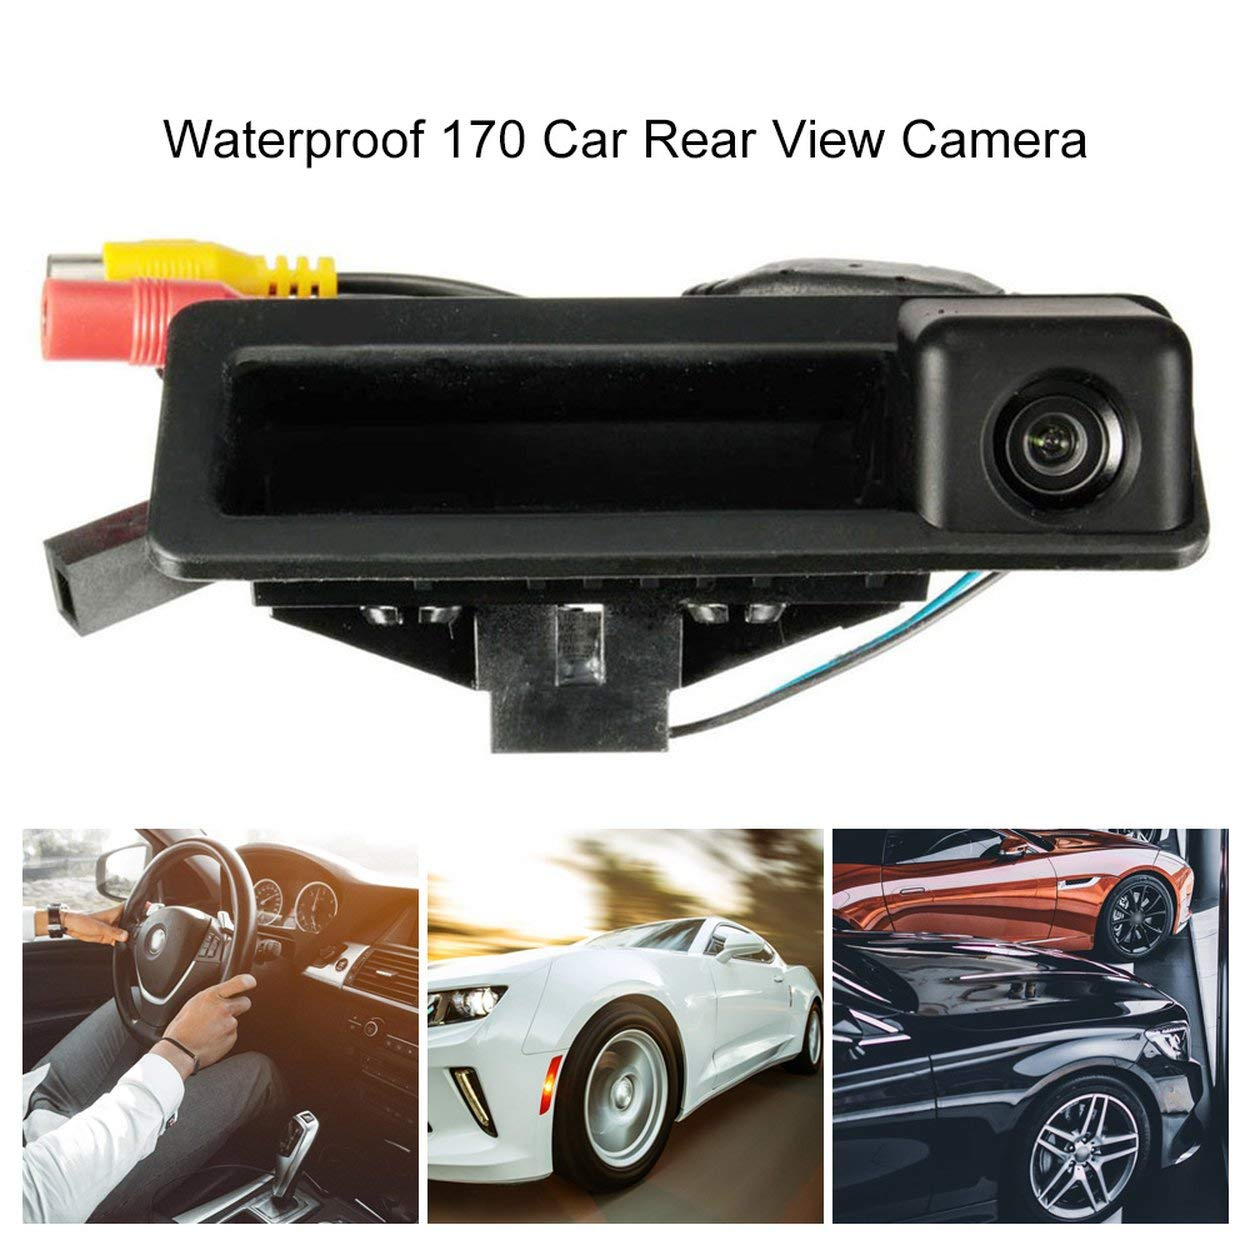 Car Reversing Rear View Camera For Bmw 3/5 Series X5 X1 X6 E39 E46 E53 E82 E88 E84 E90 E91 E92 E93 E60 E61 E70 E71 E72 image